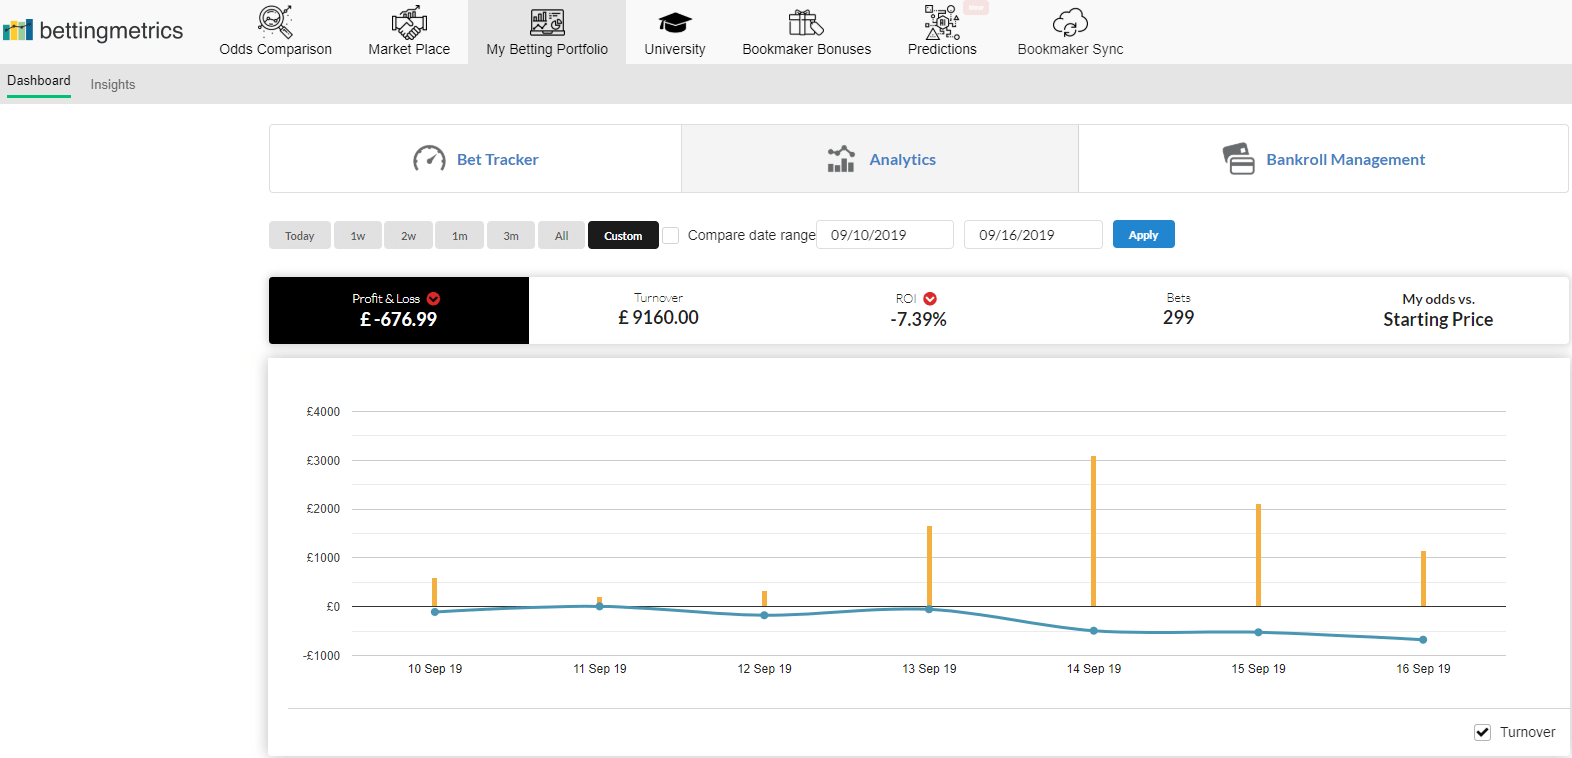 Week 17 profit and loss graph of my betting journal